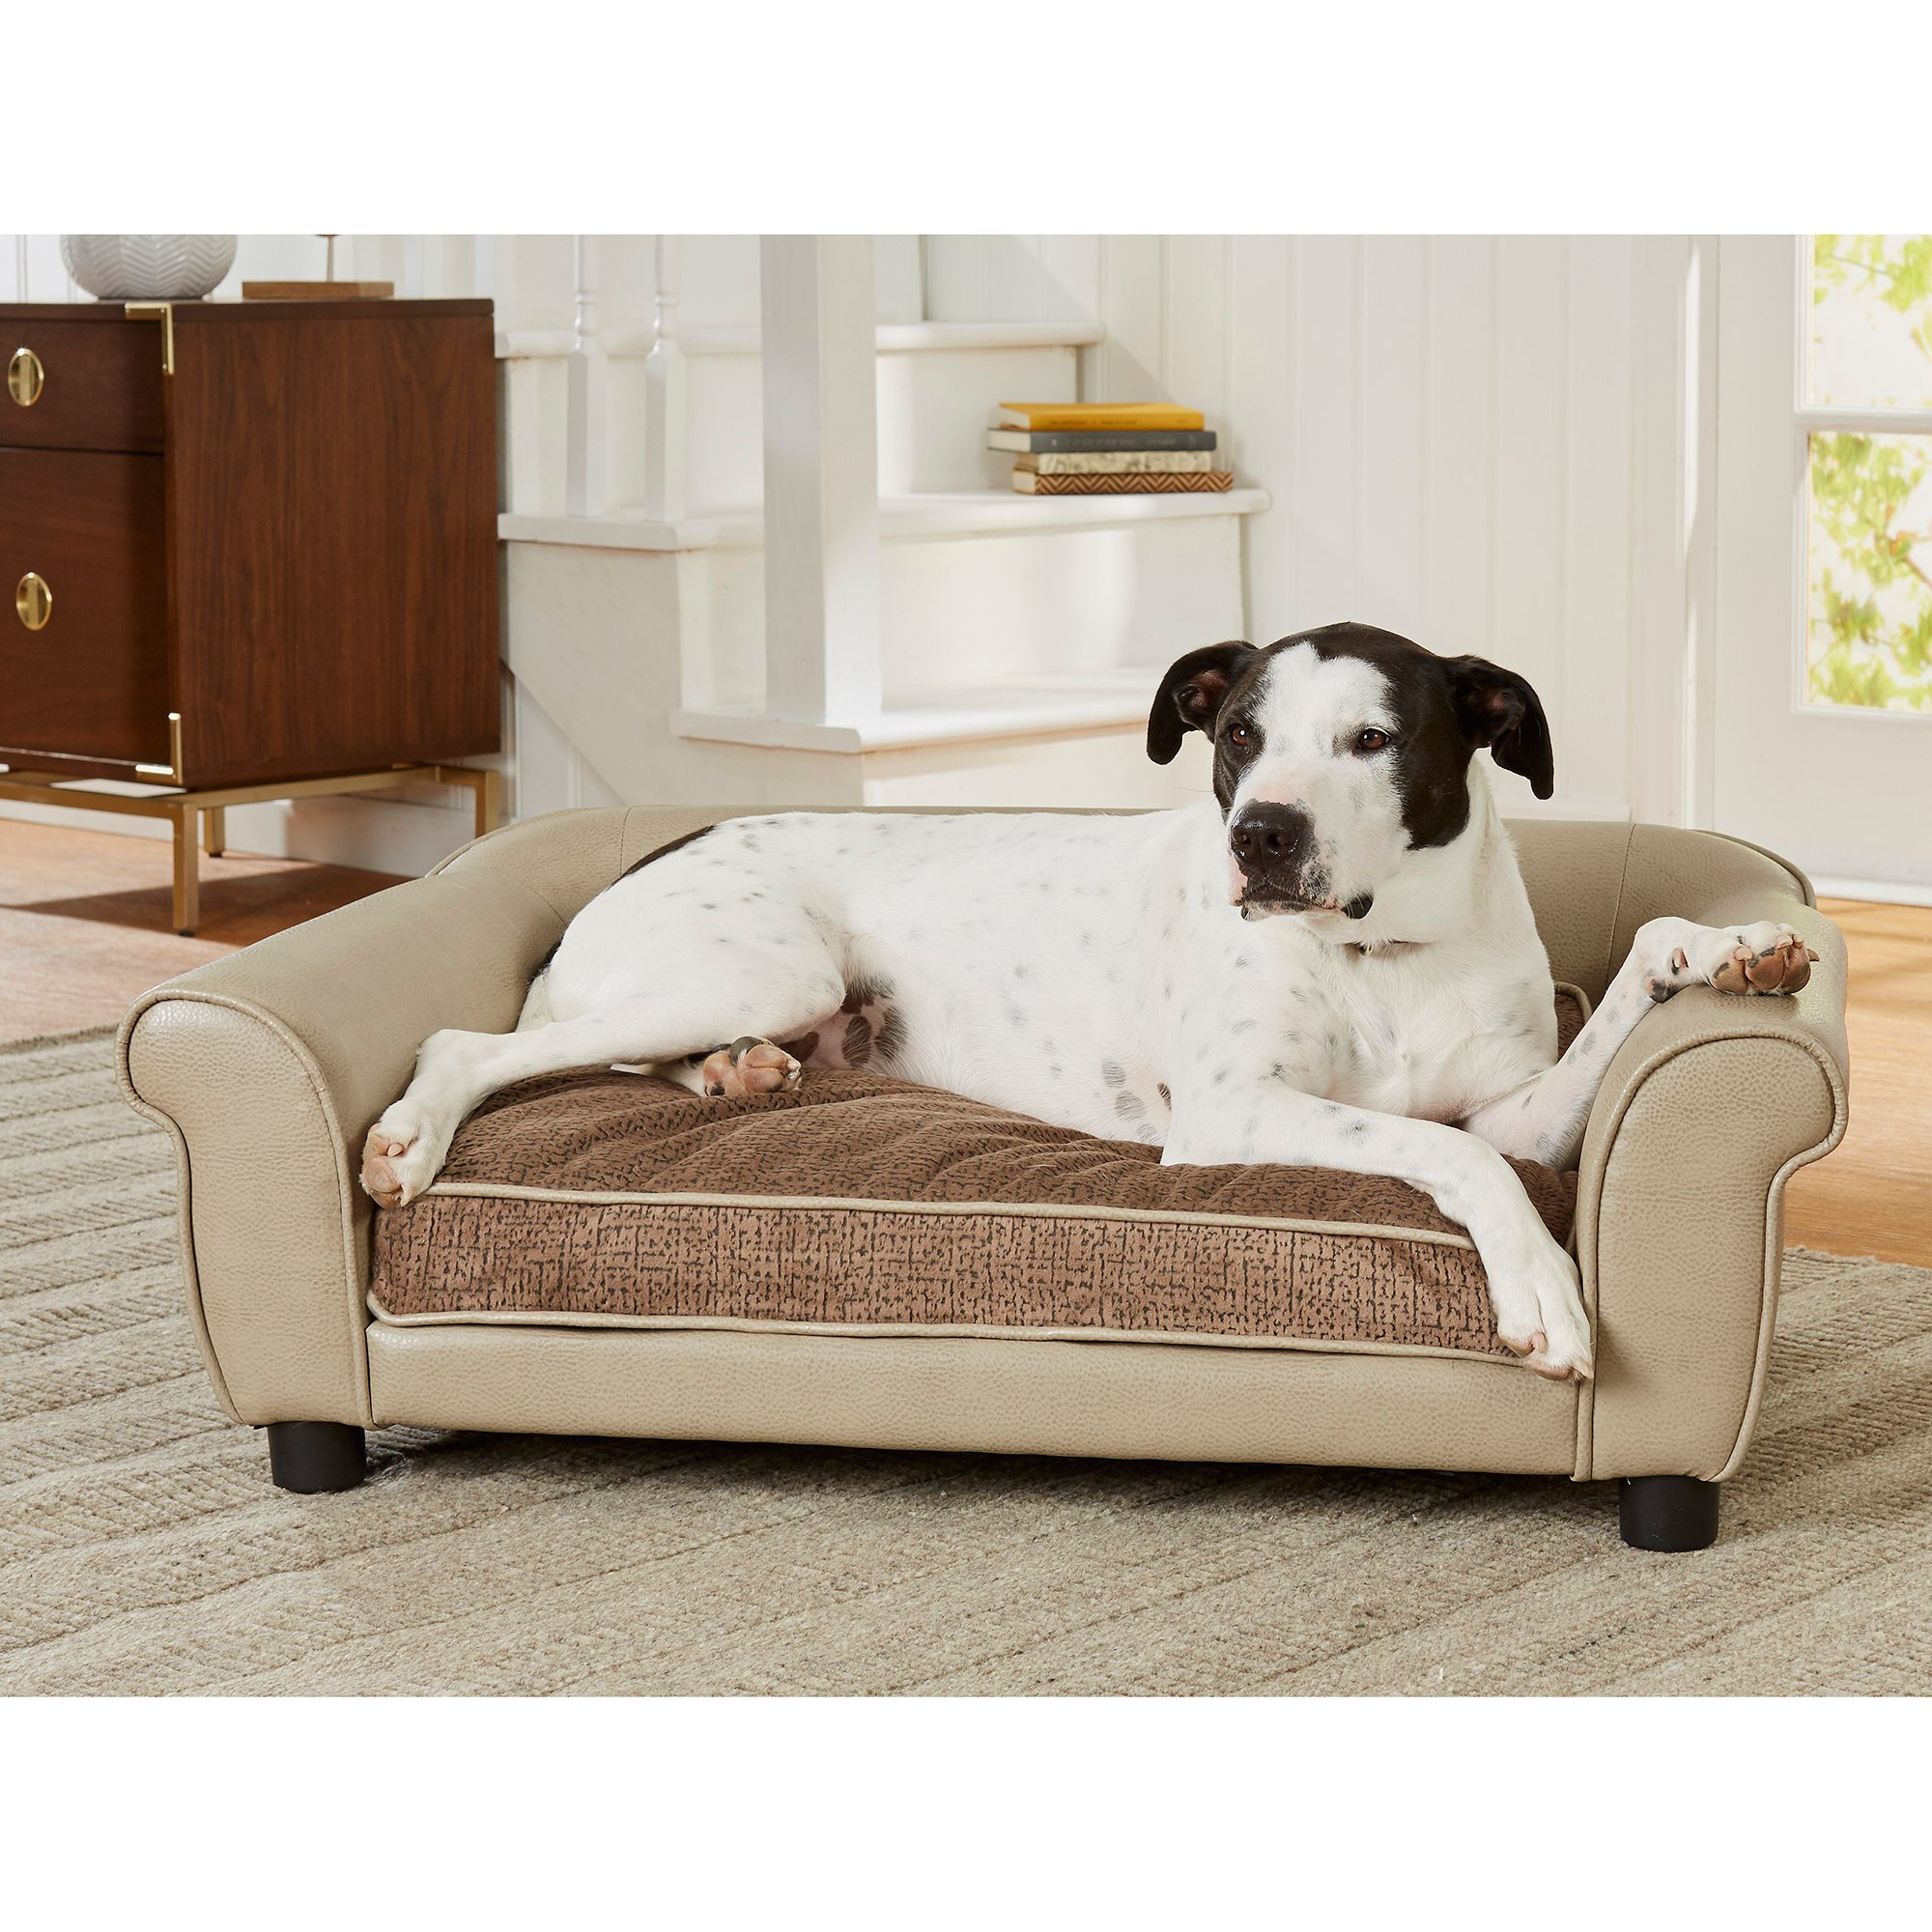 Enchanted Home Pet Maxwell Sofa Stone Cypress for Dog, 40.5